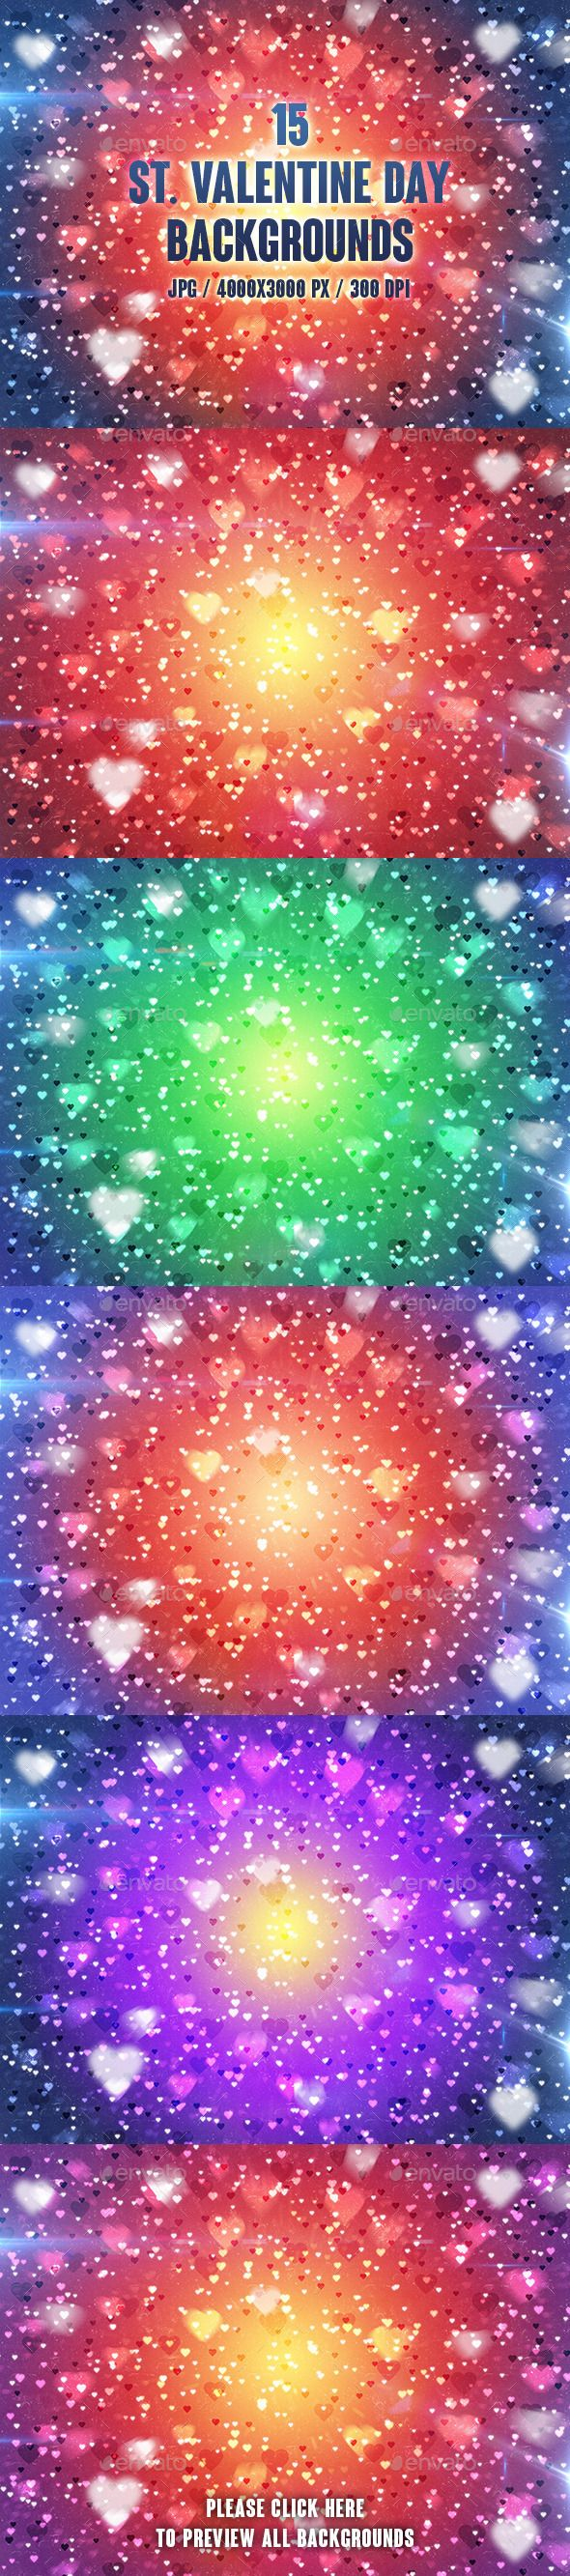 15 St. Valentine Day Backgrounds by groovydes Set of 15 jpg backgrounds, which are ideally suited for congratulations, cards, posters, banners or site devoted to Valentine鈥檚 Da